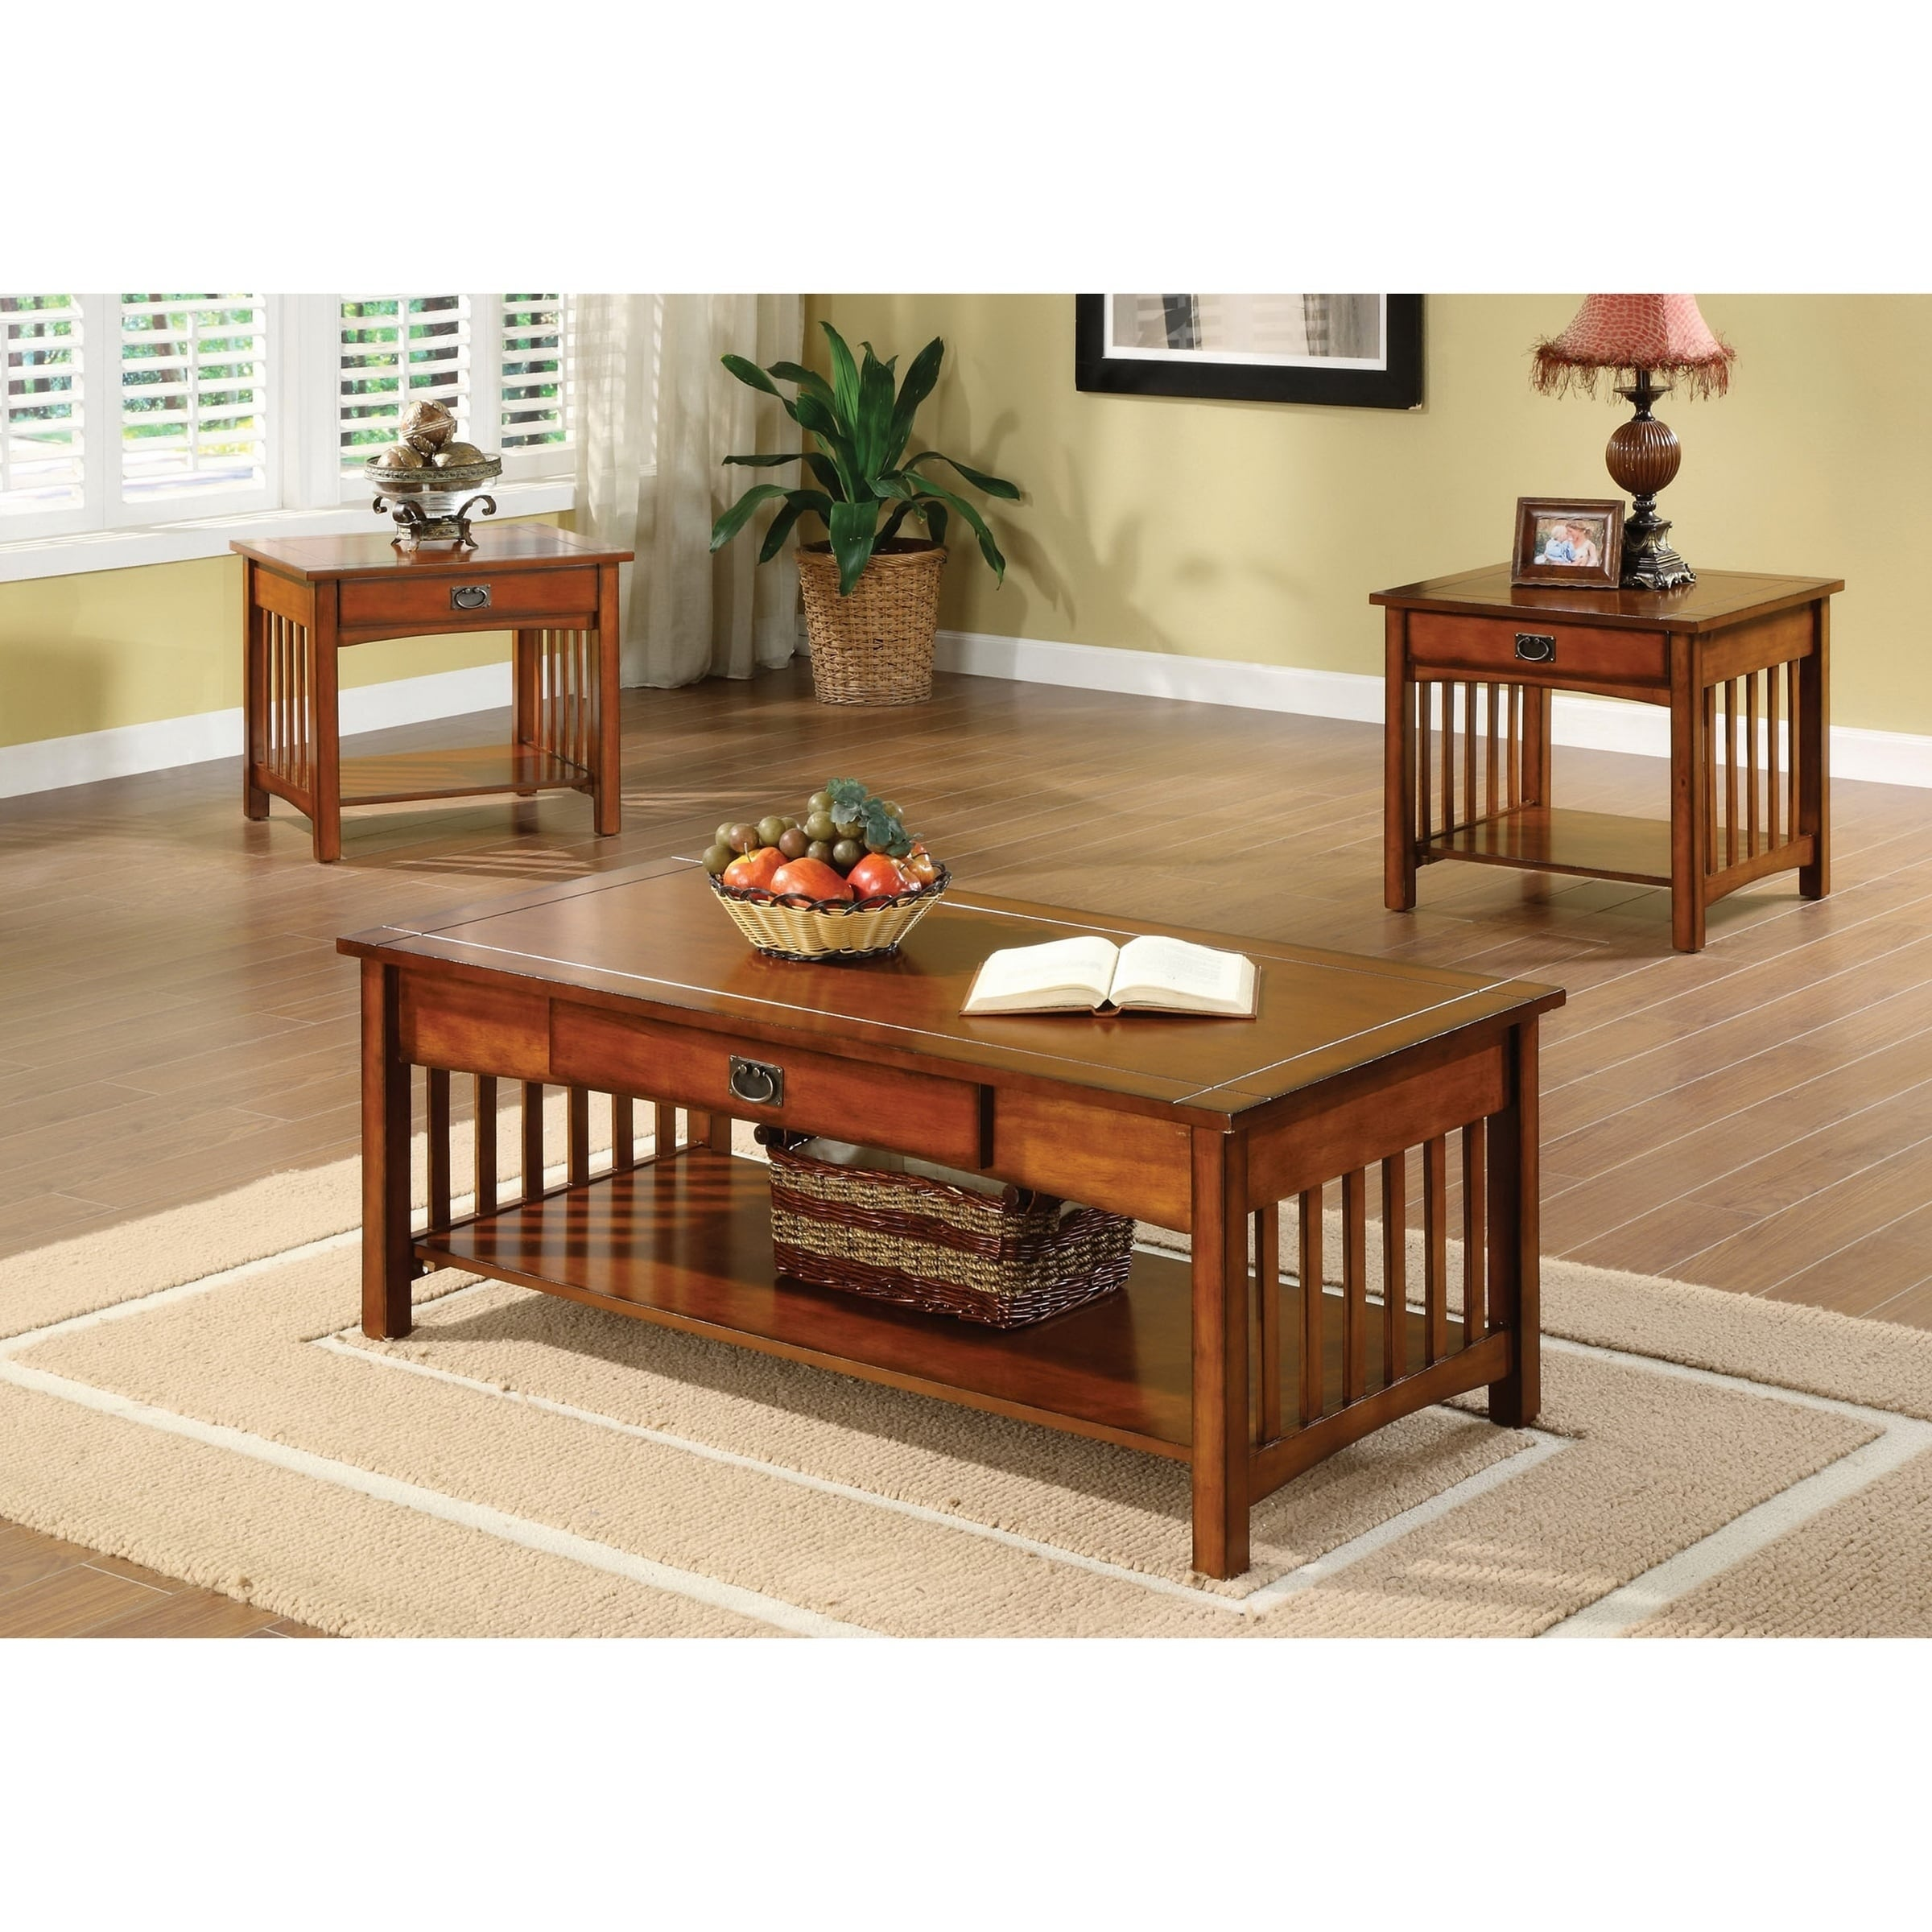 Details about furniture of america nash mission style 3 piece antique oak finish coffee table